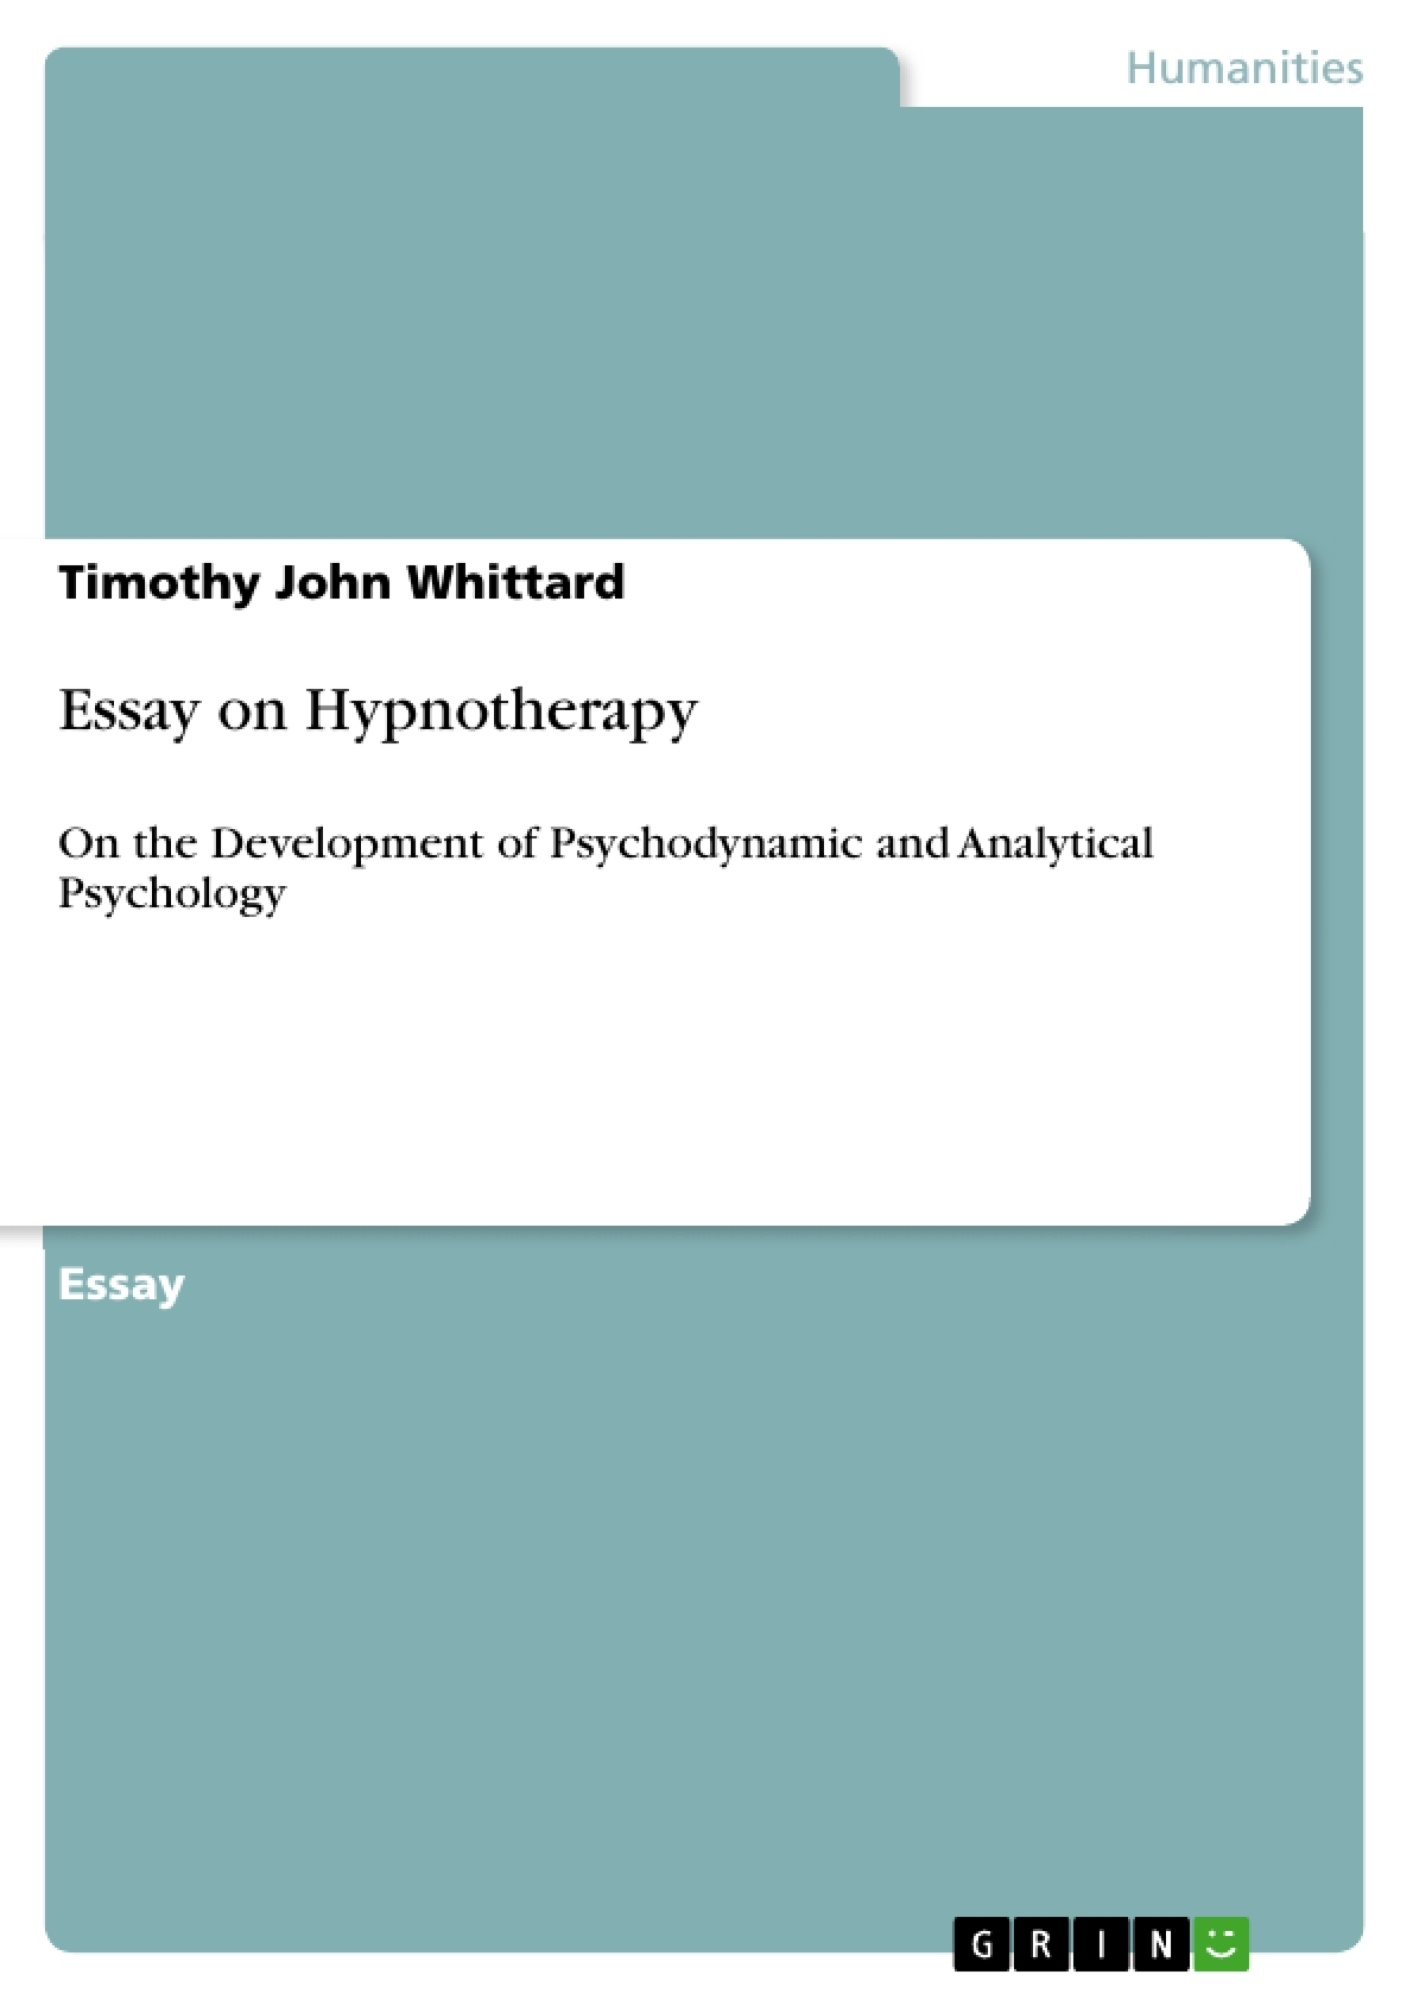 Title: Essay on Hypnotherapy